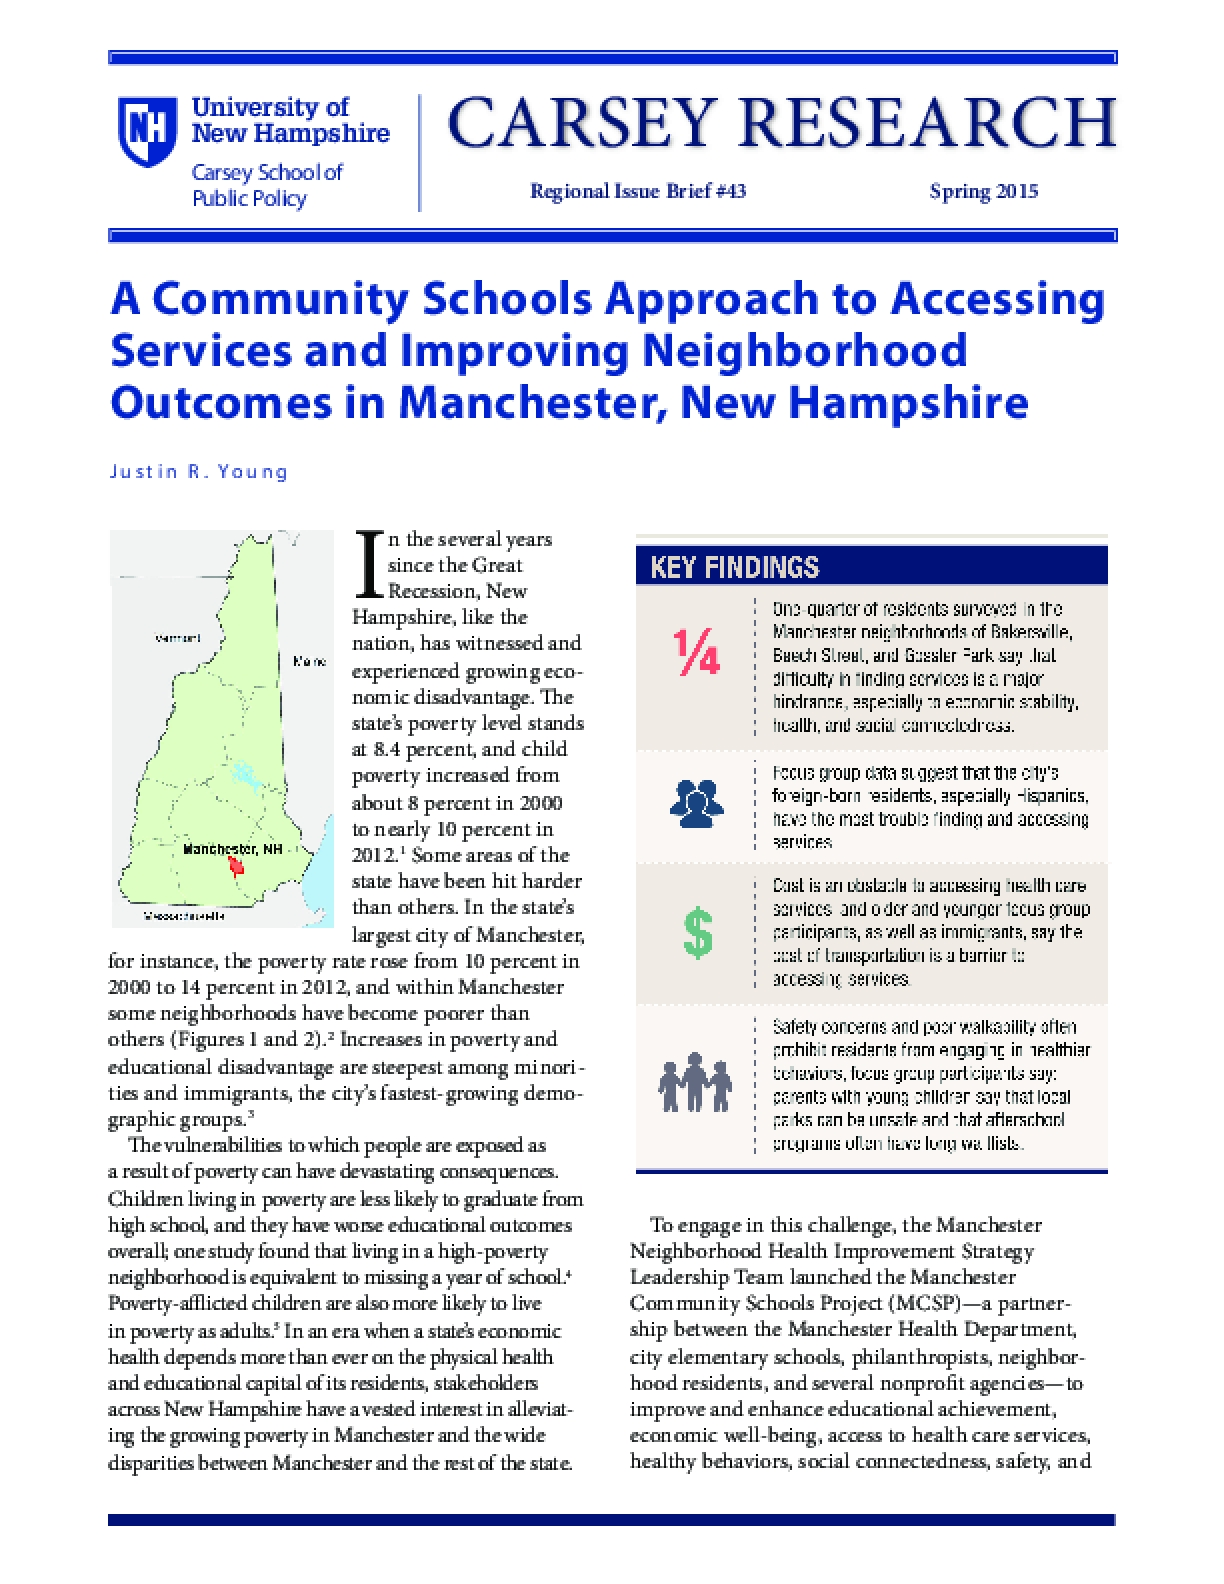 A Community Schools Approach to Accessing Services and Improving Neighborhood Outcomes in Manchester, New Hampshire